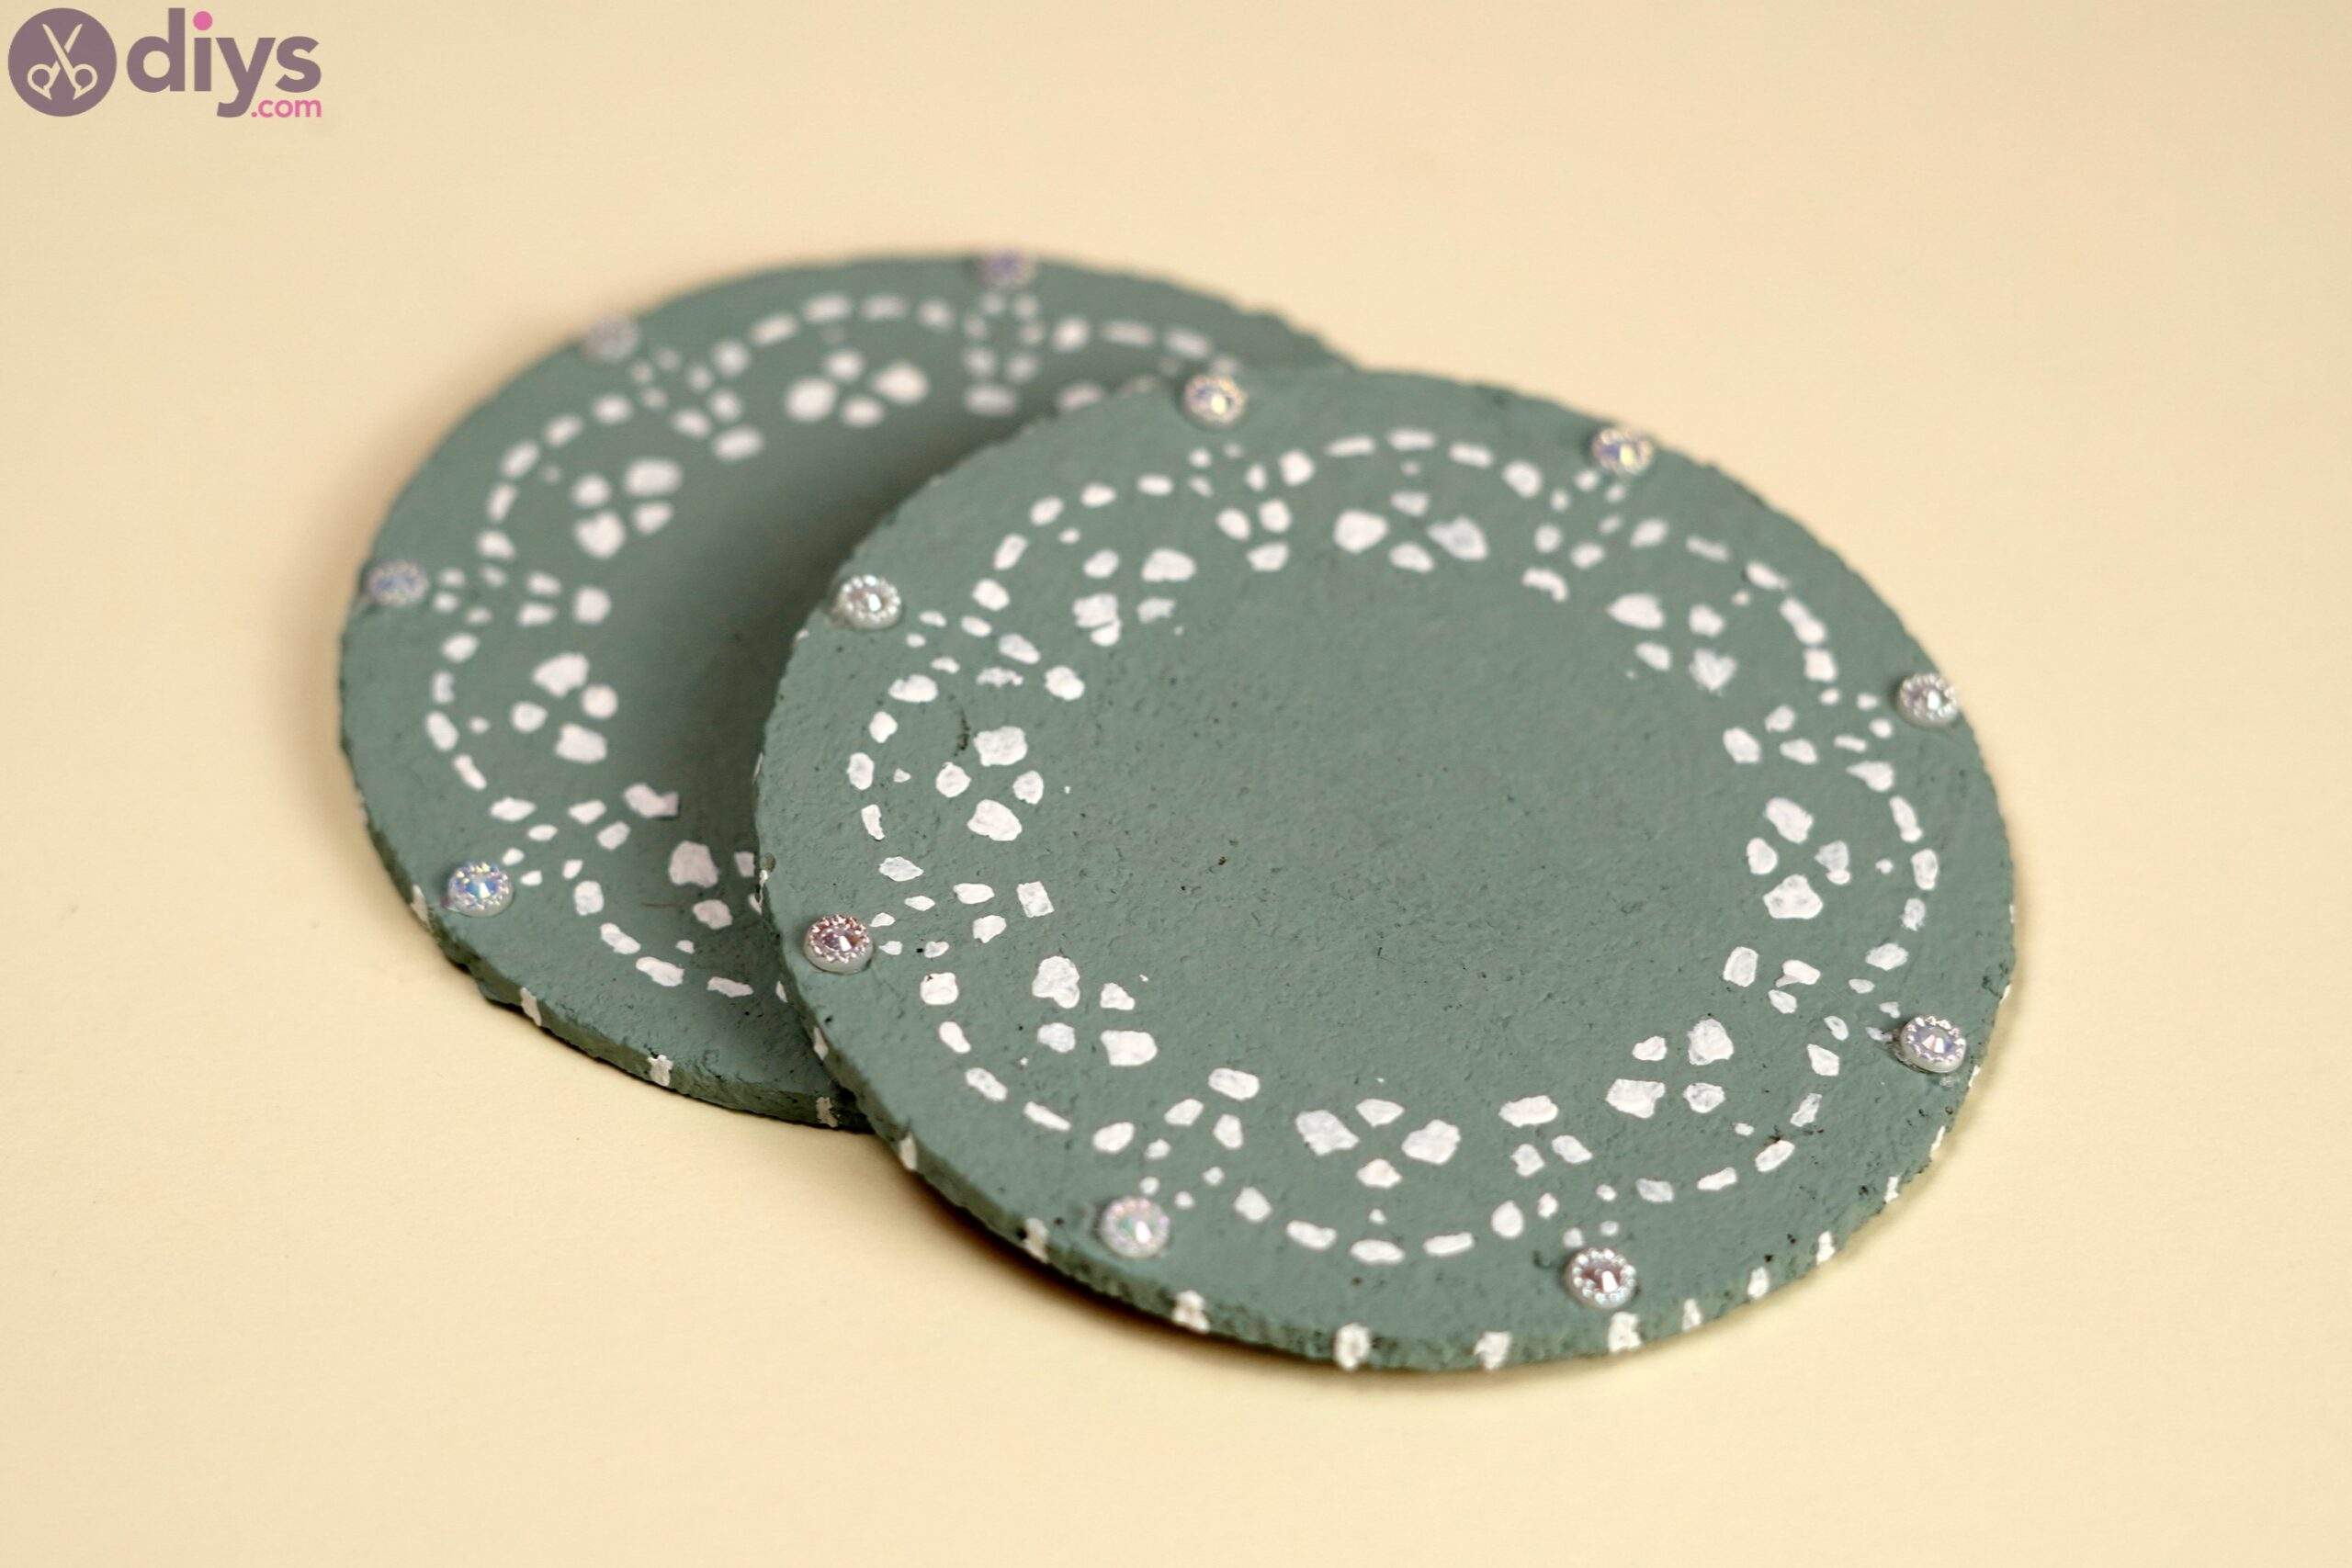 Coaster with lace paper photos (2)